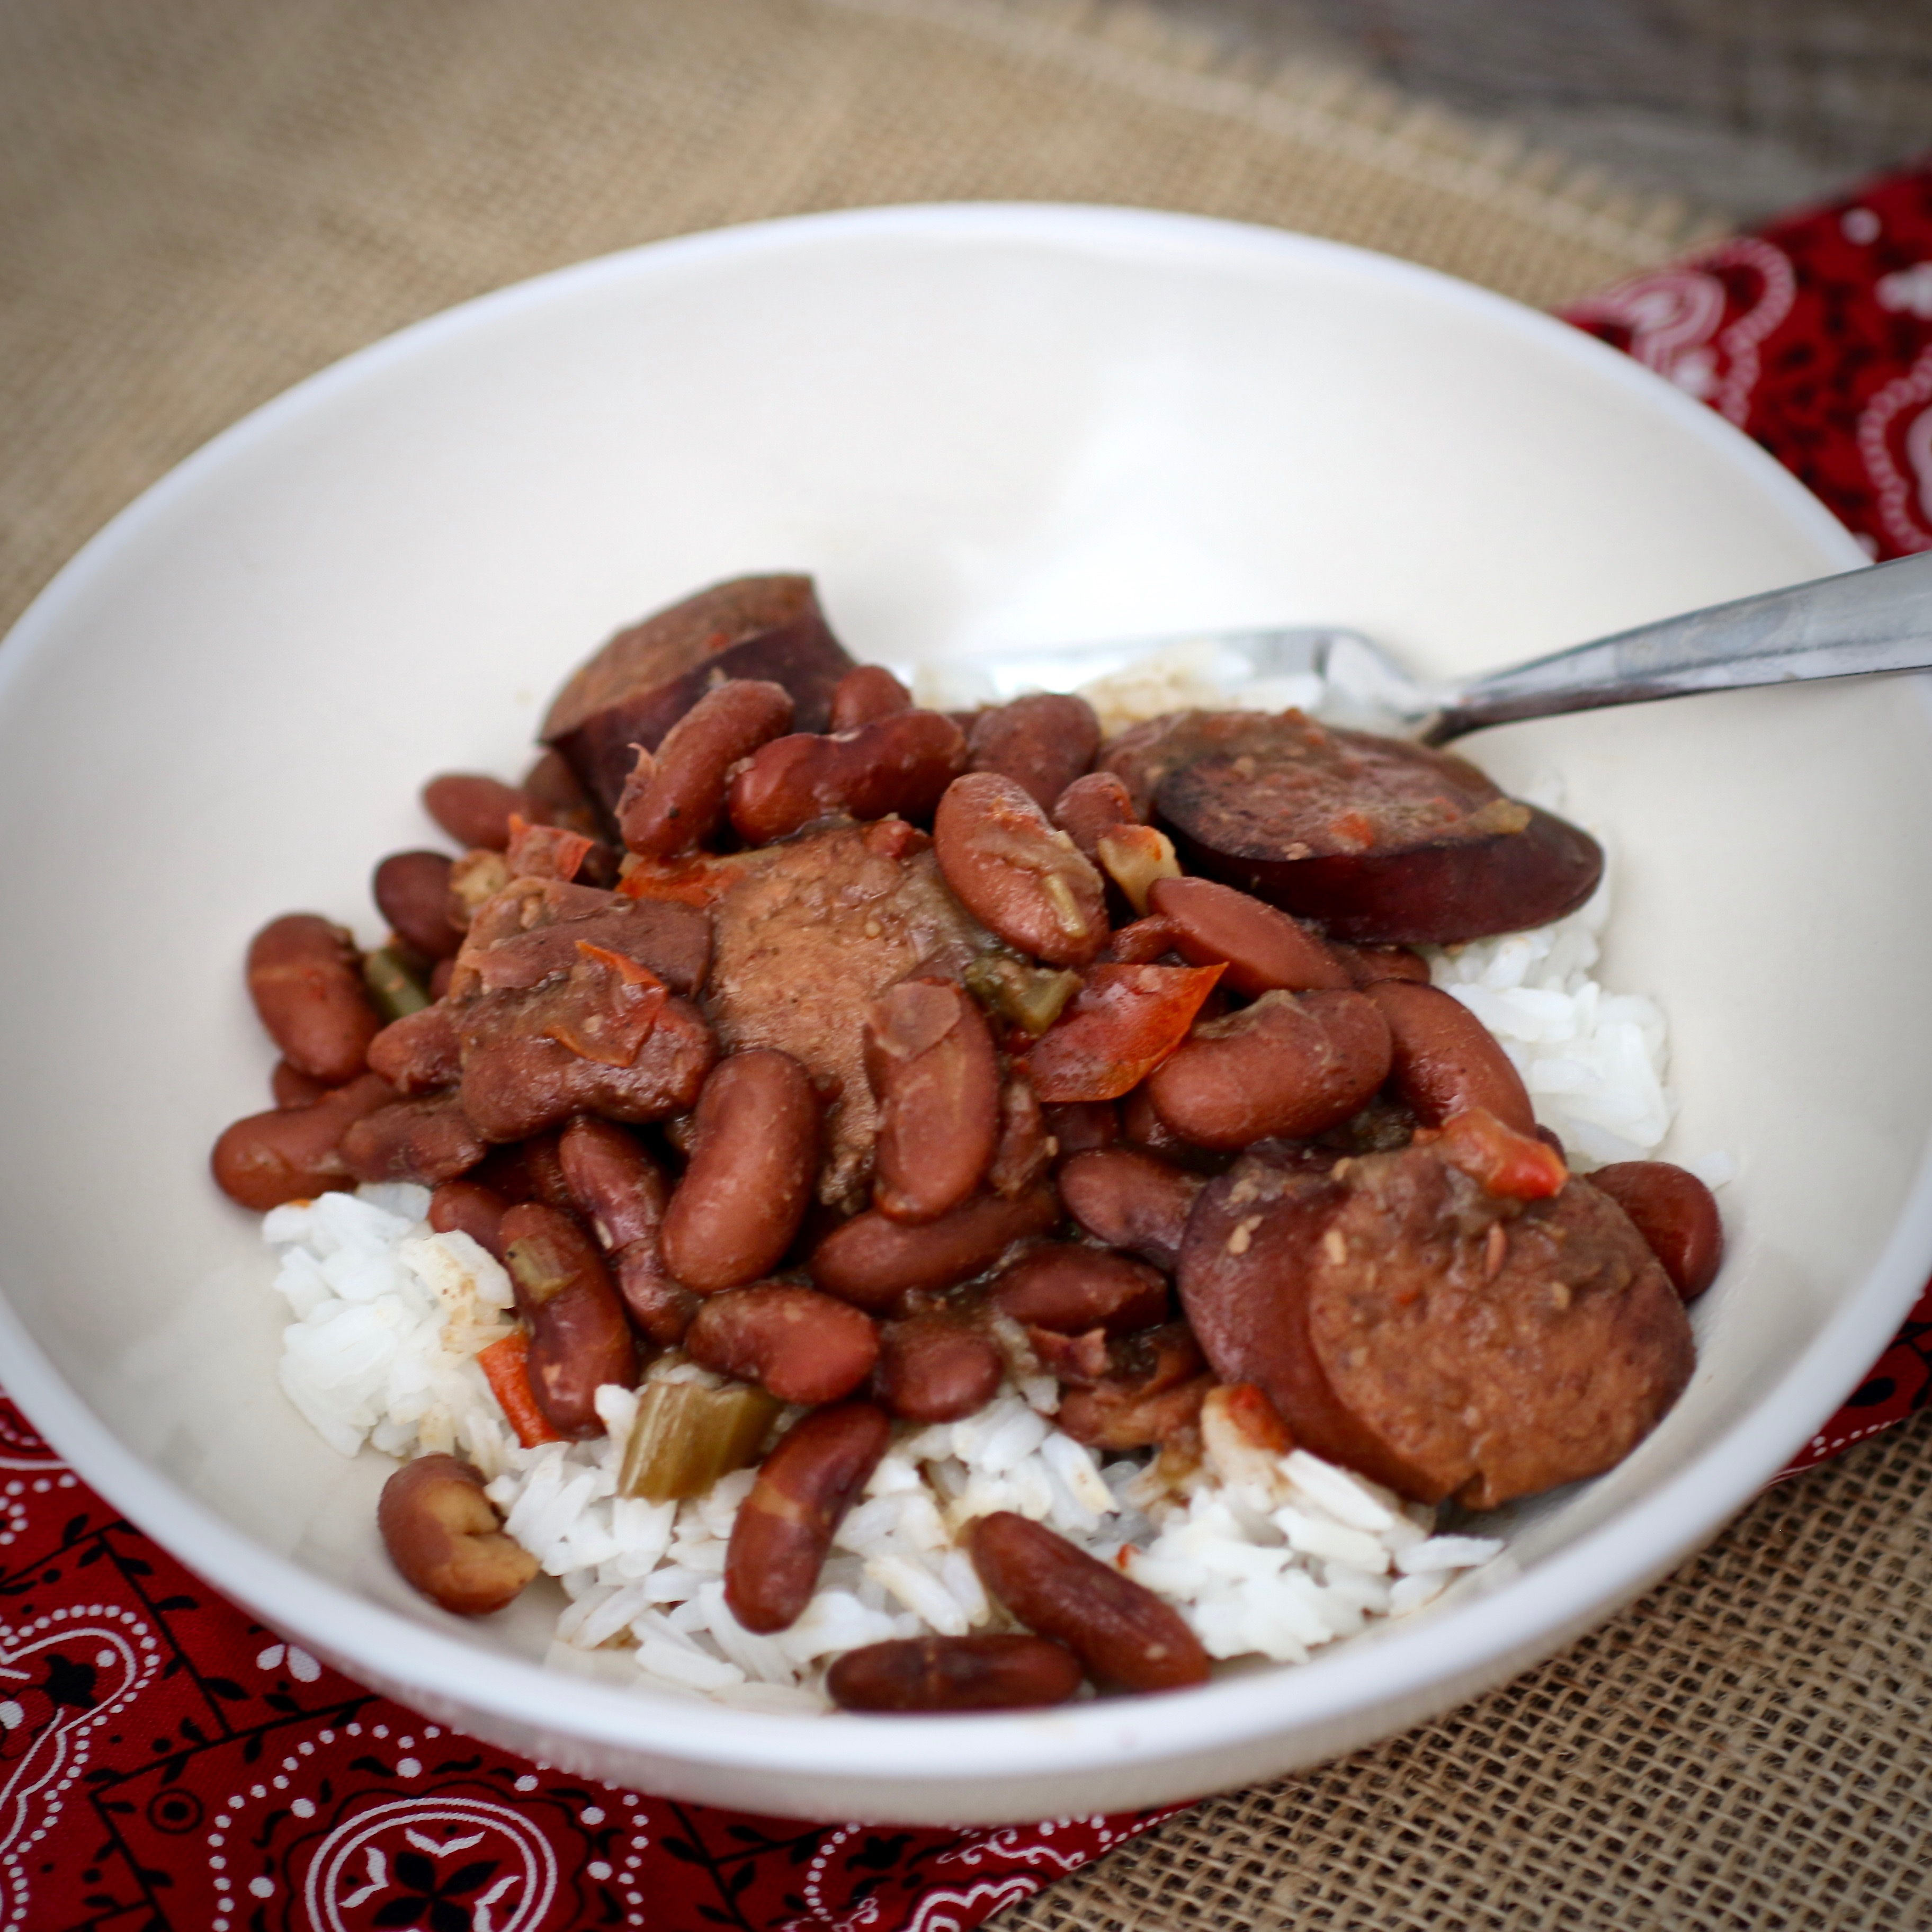 """The recipe calls for soaking dried red beans for 2 hours before cooking them in the Instant Pot, but several reviewers opted not to, and still loved the results. """"I was thrilled it was so simple and delicious!"""" raves Mimi's Kitchen. """"I'm new to the instant pot and it gave me a whole new confidence. Yay!"""""""